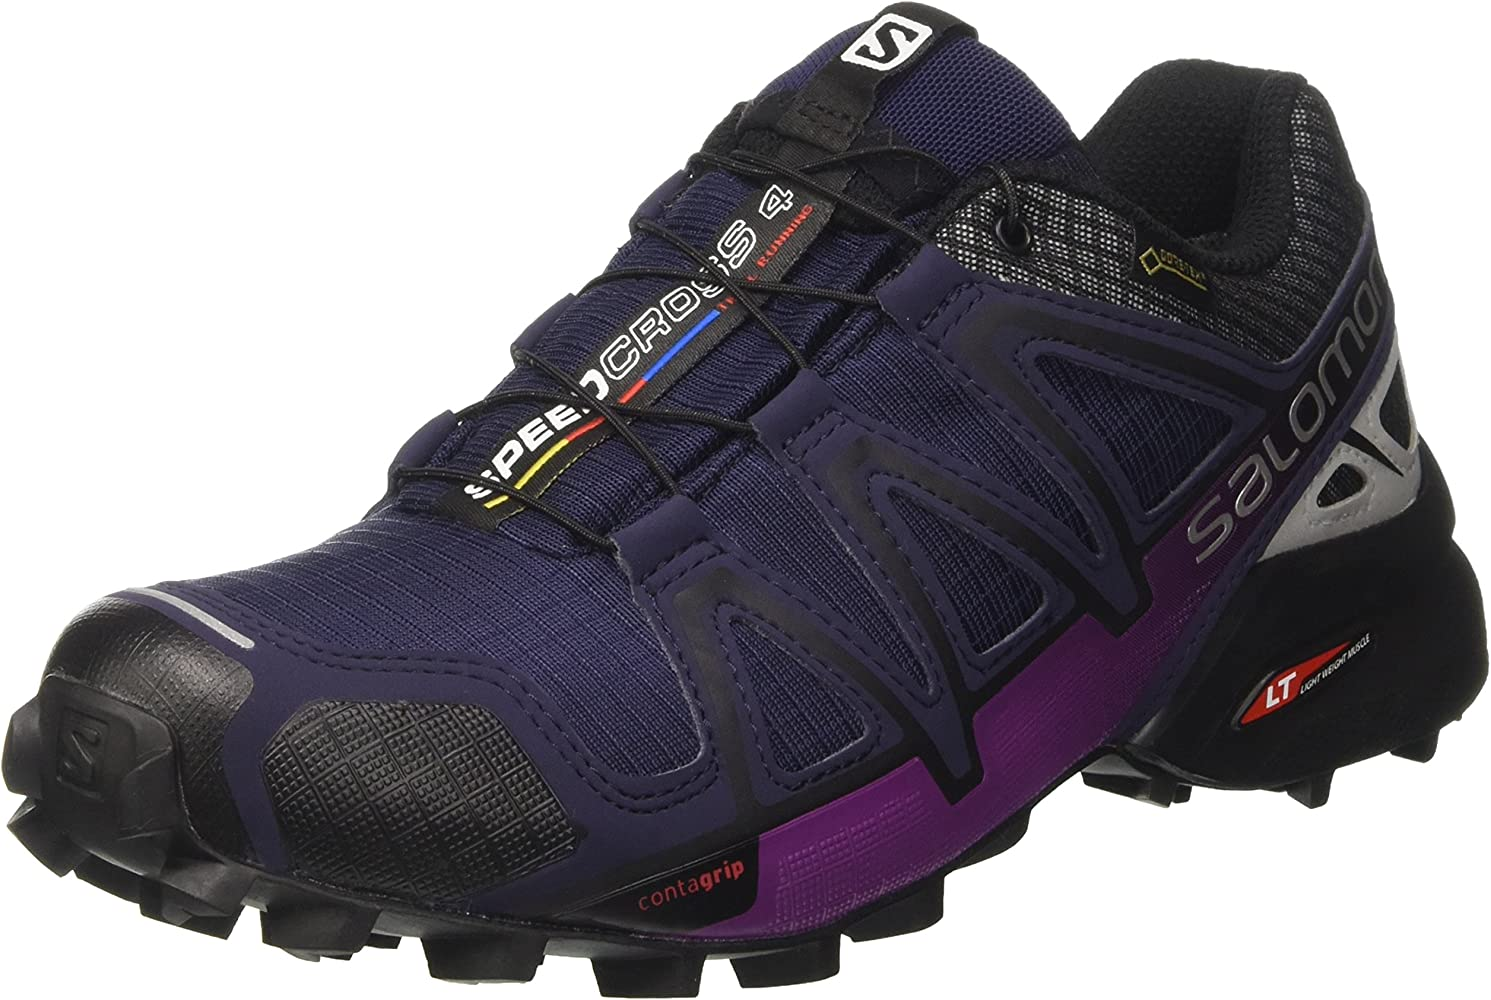 Salomon Men's Speedcross 4 Nocturne GTX Low Rise Hiking